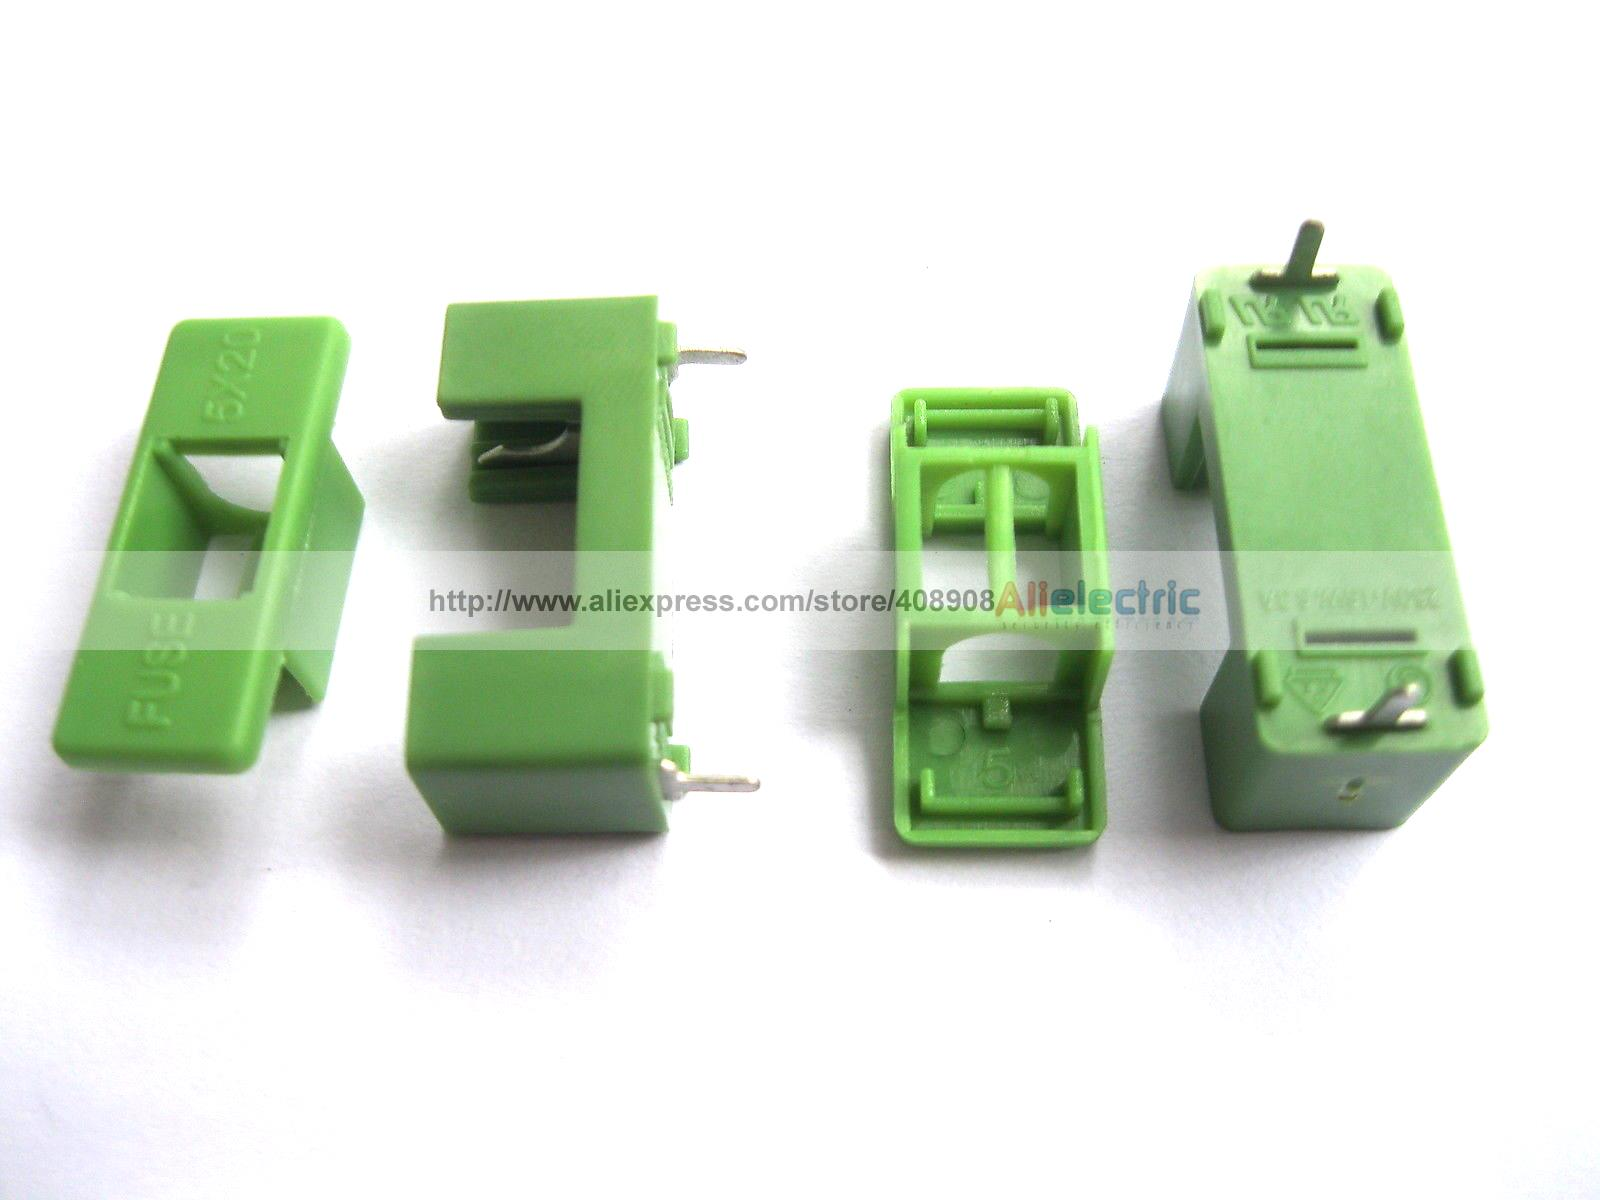 100 Pcs PTF 7 DIP Fuse Holder 6 3A 250V Used for 5x20 Green Color mip0254 dip 7